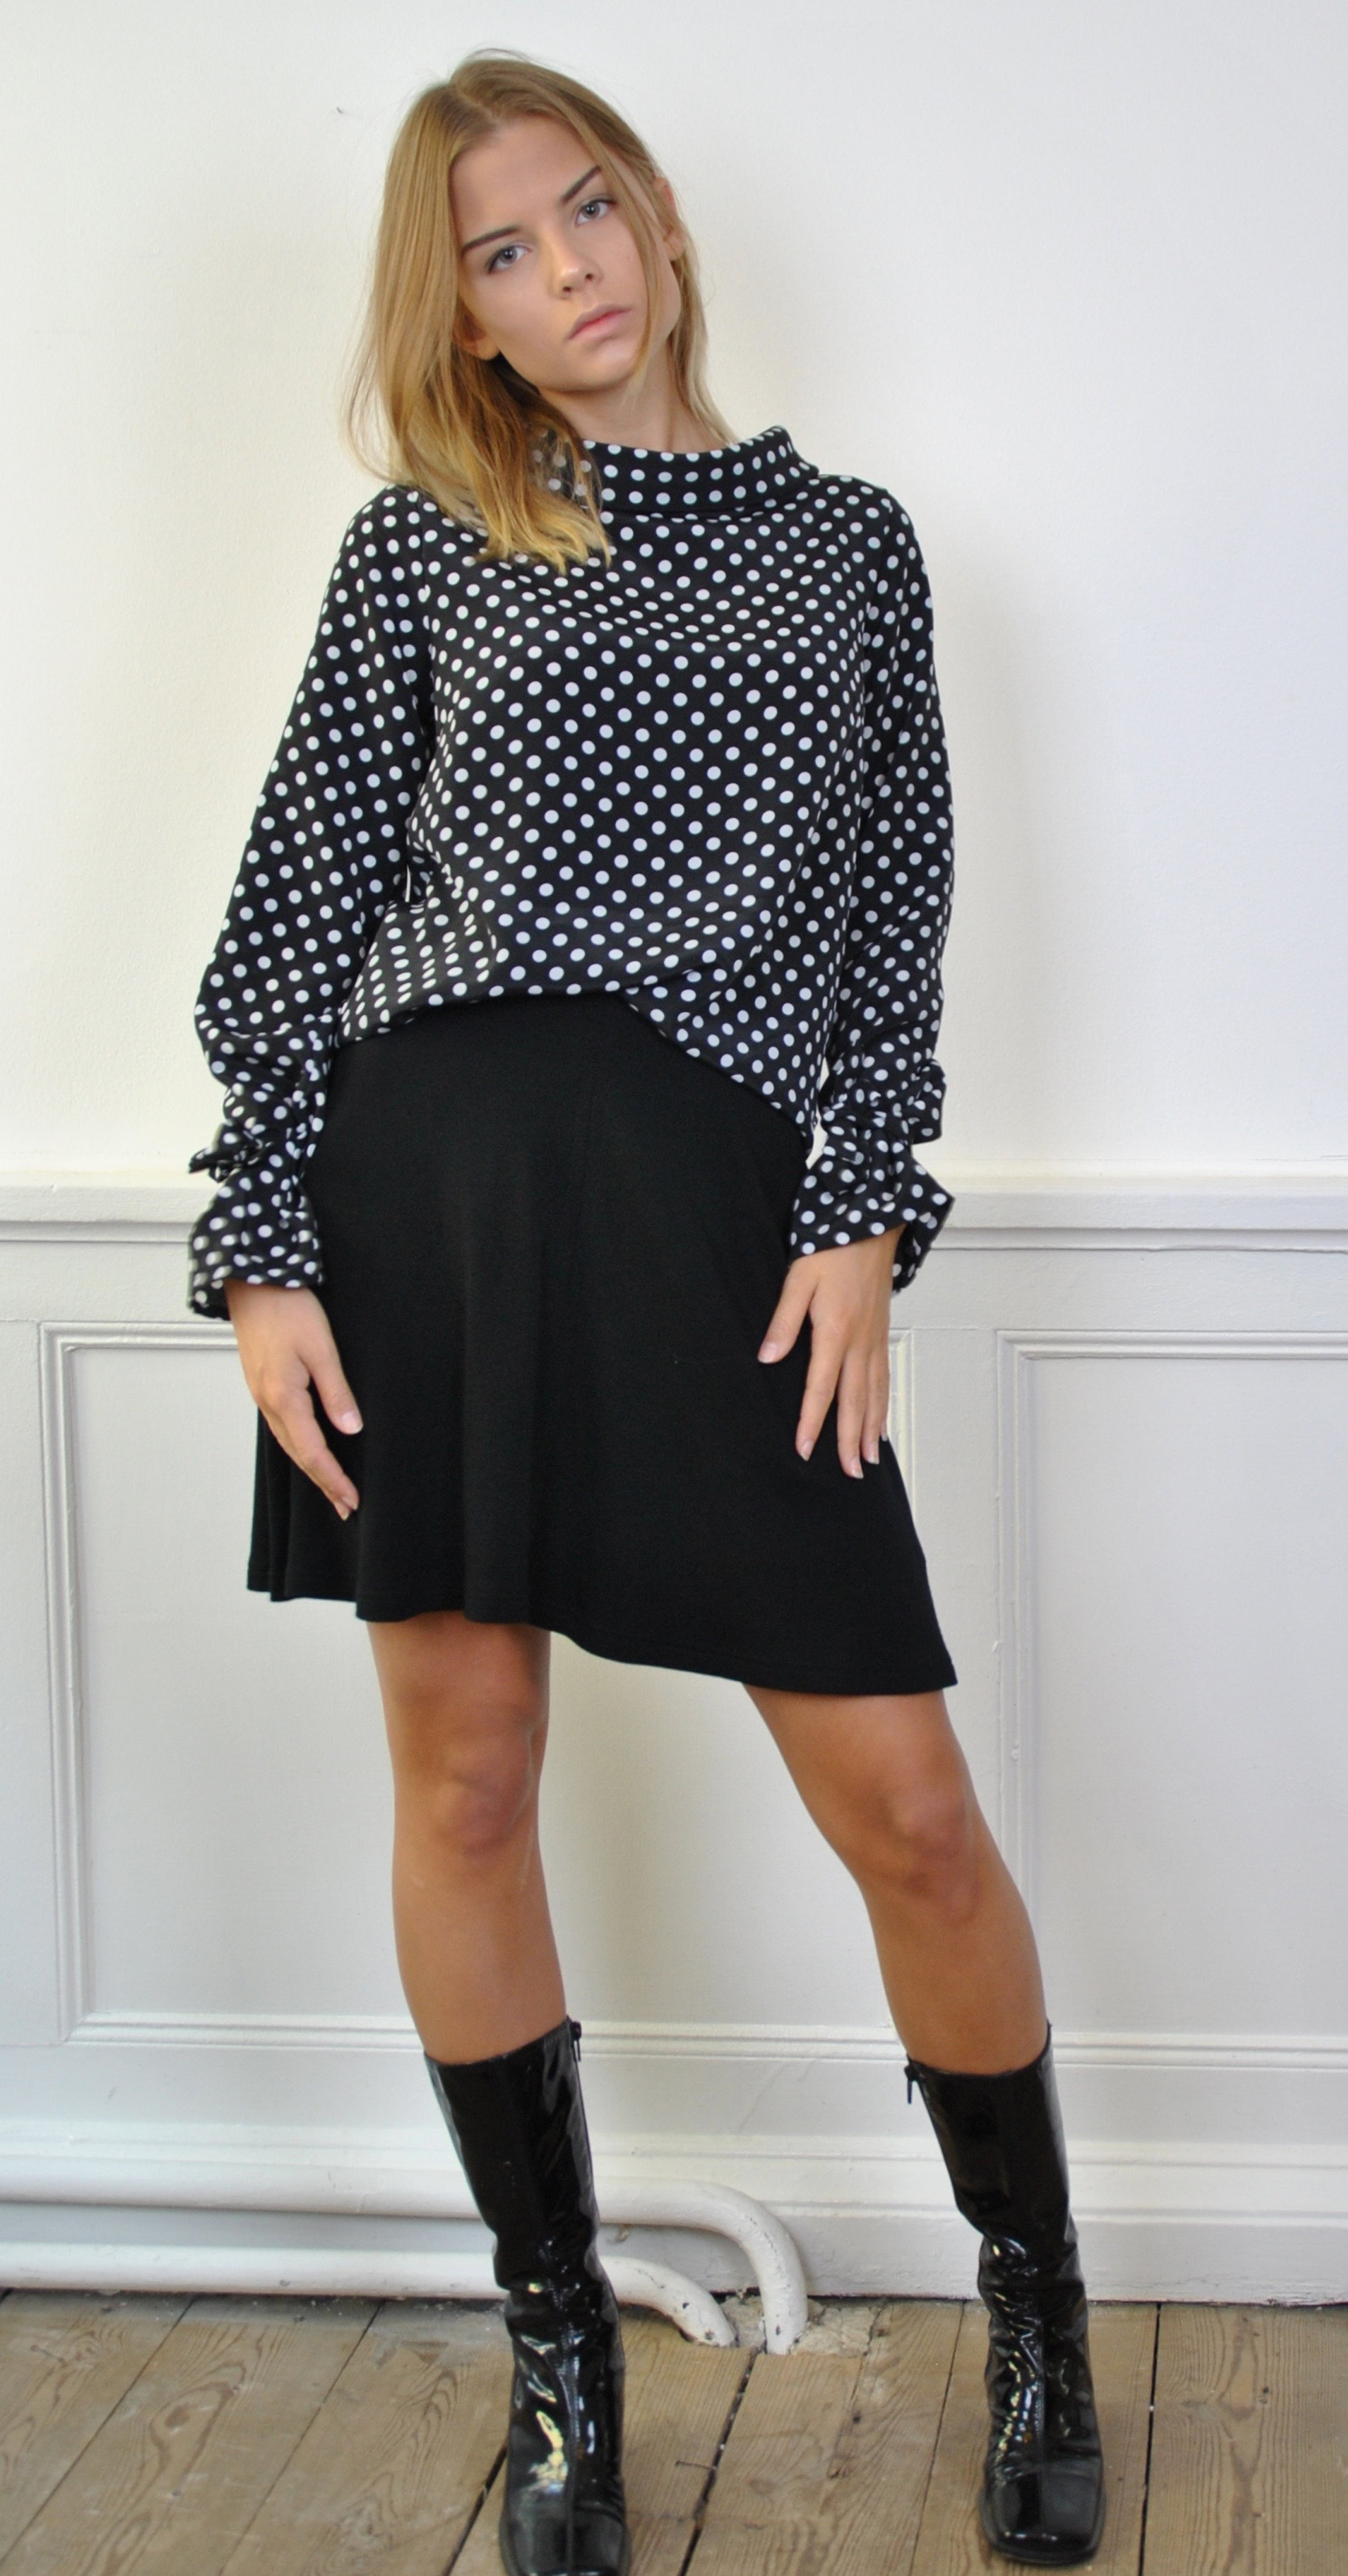 Pamela Short Skirt